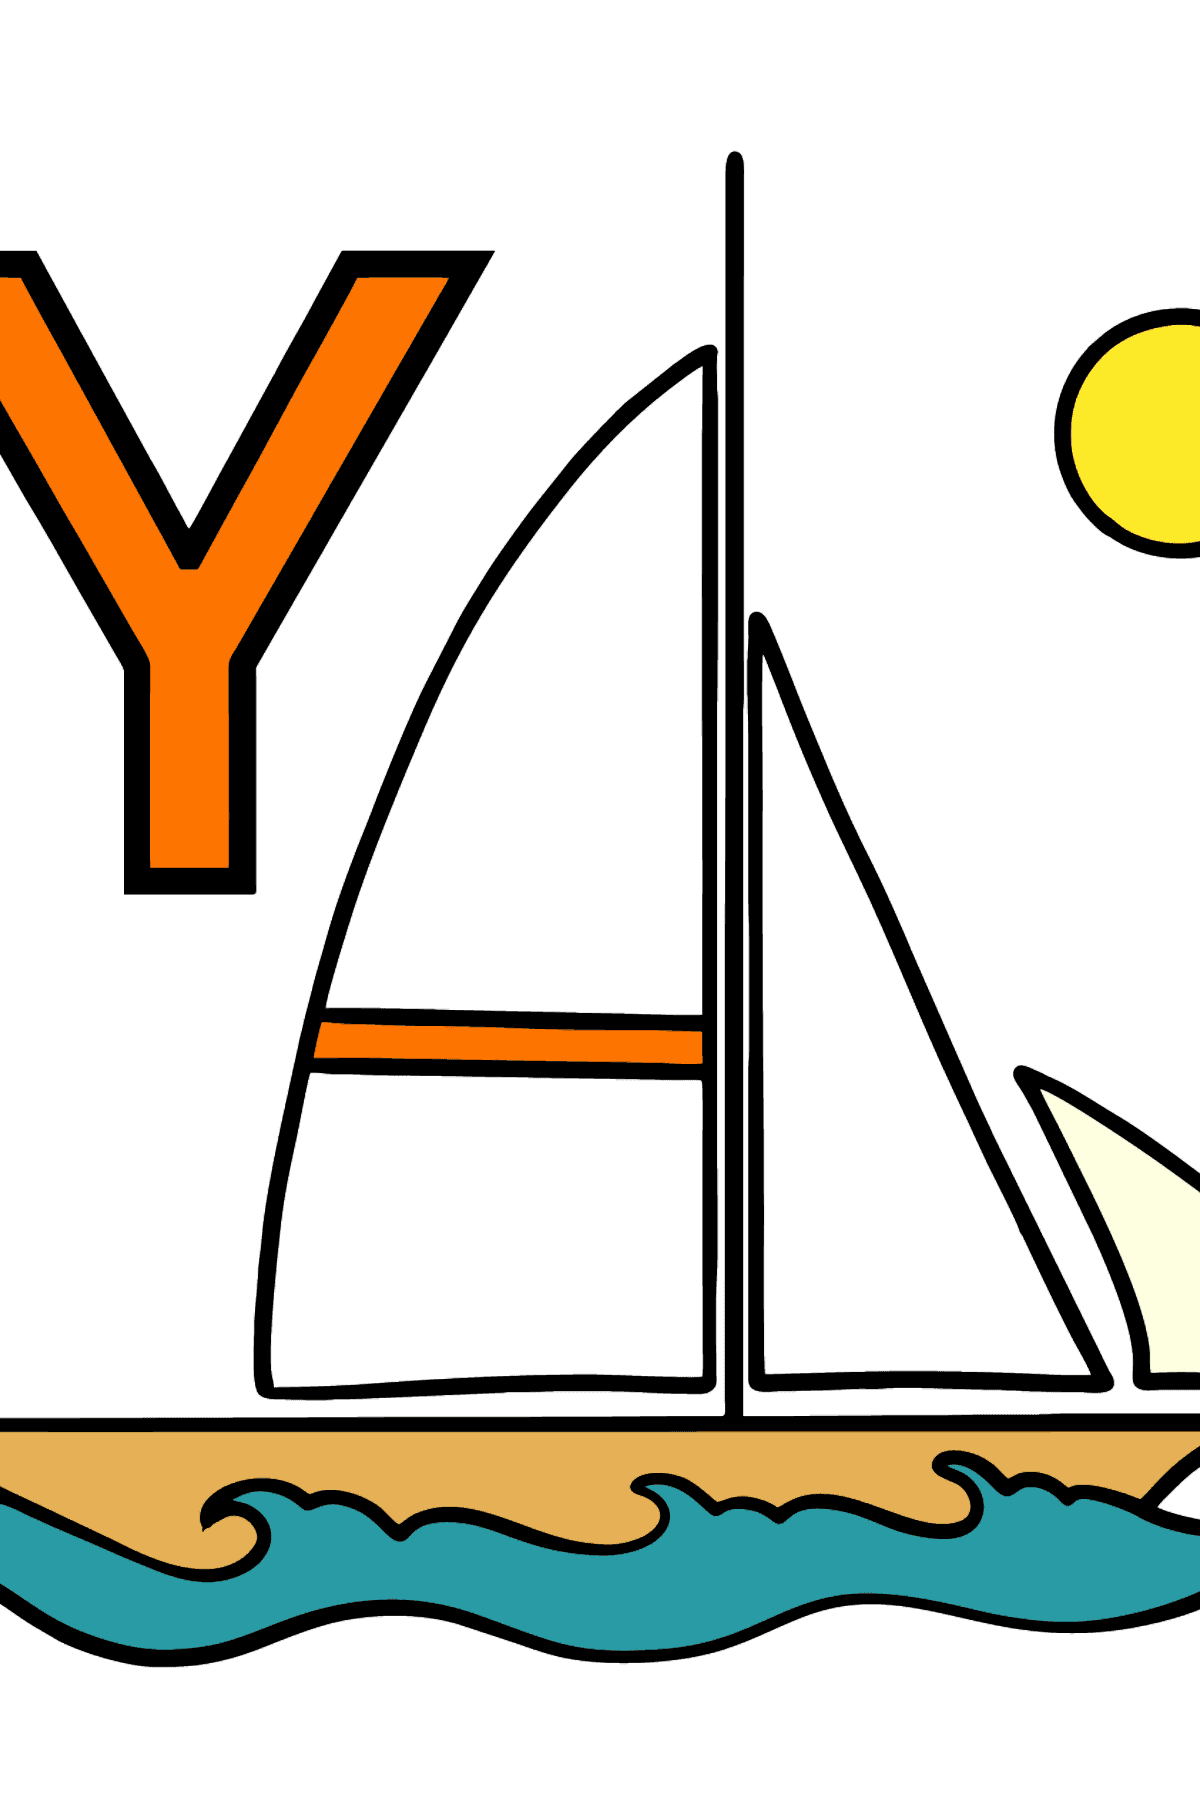 English Letter Y coloring pages - YACHT - Coloring Pages for Kids